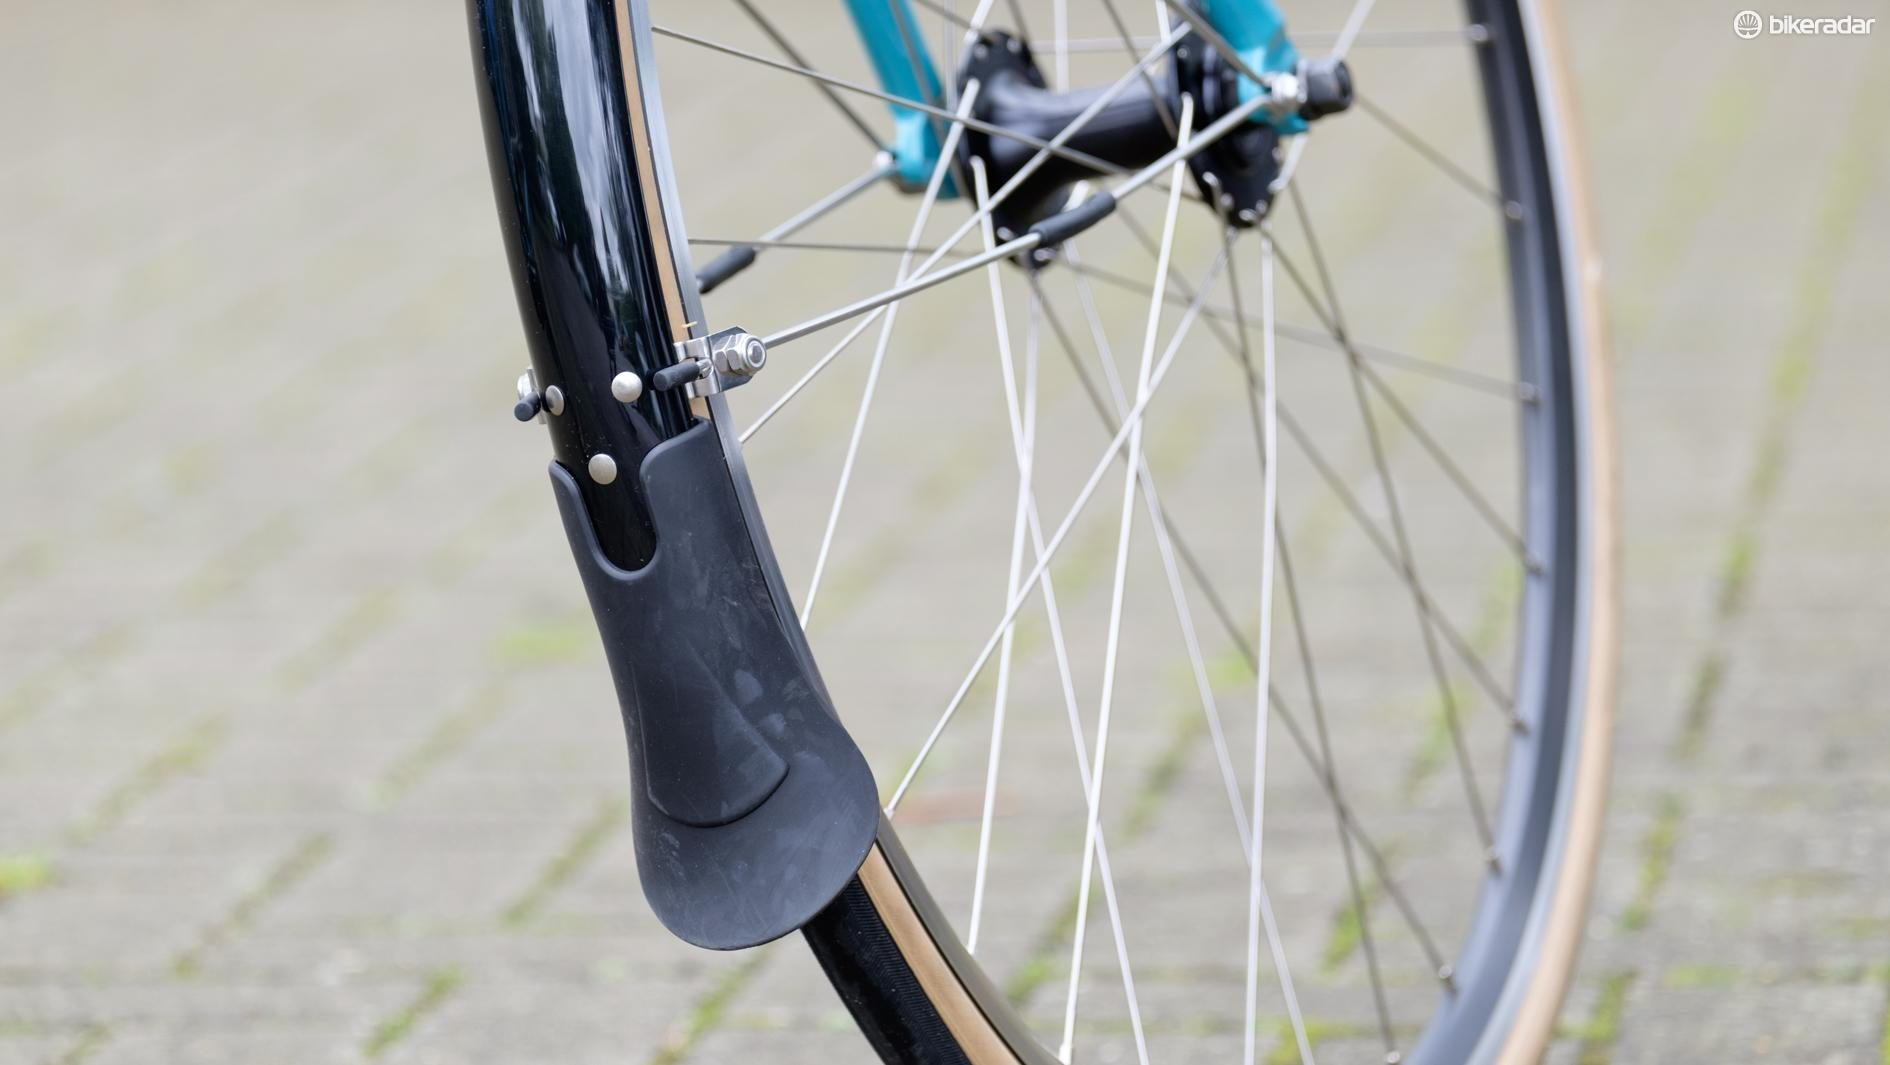 medium resolution of genesis specced super long full length mudguards for year round practicality